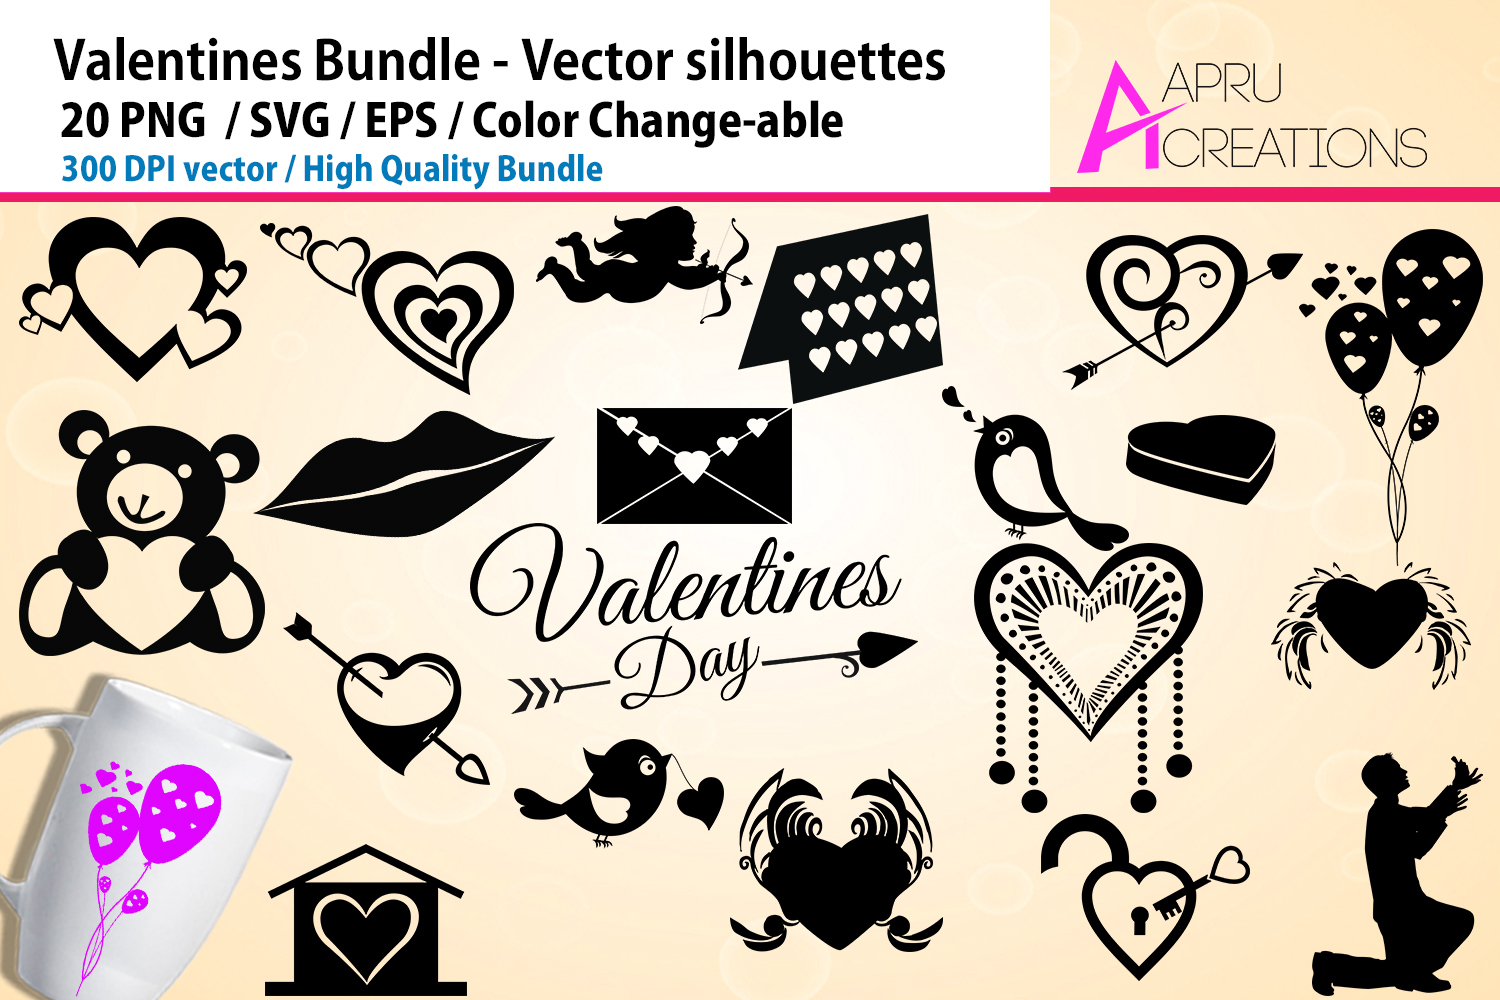 Download Free Valentines Silhouette Graphic By Aparnastjp Creative Fabrica for Cricut Explore, Silhouette and other cutting machines.